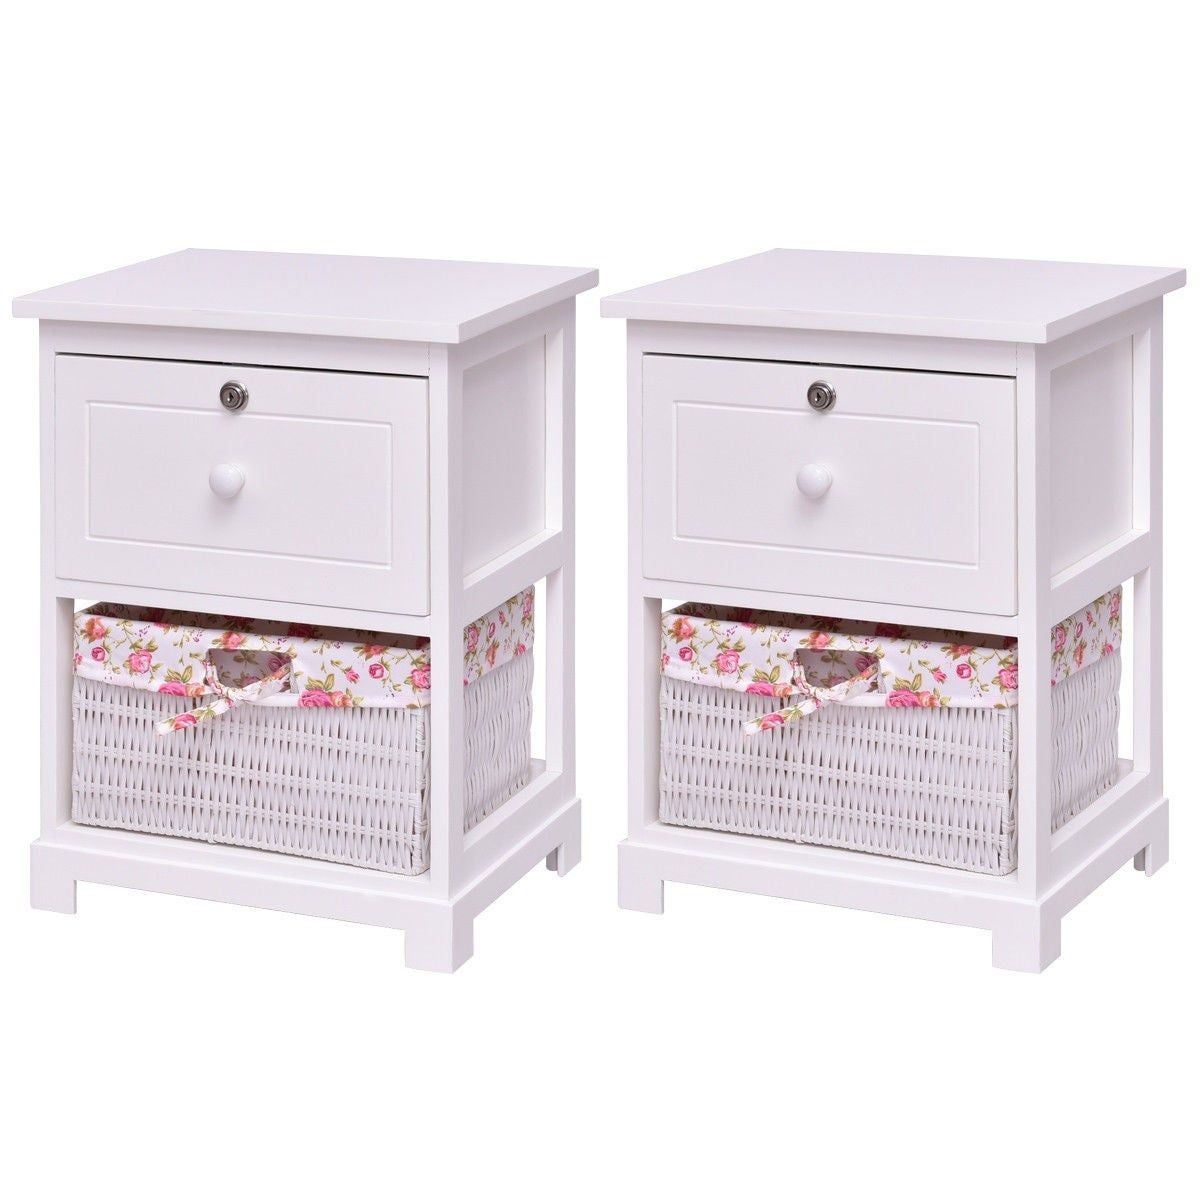 Costway 2PCS 2 Tiers Wood Nightstand 1 Drawer 1 Basket Bedside End Table Organizer White